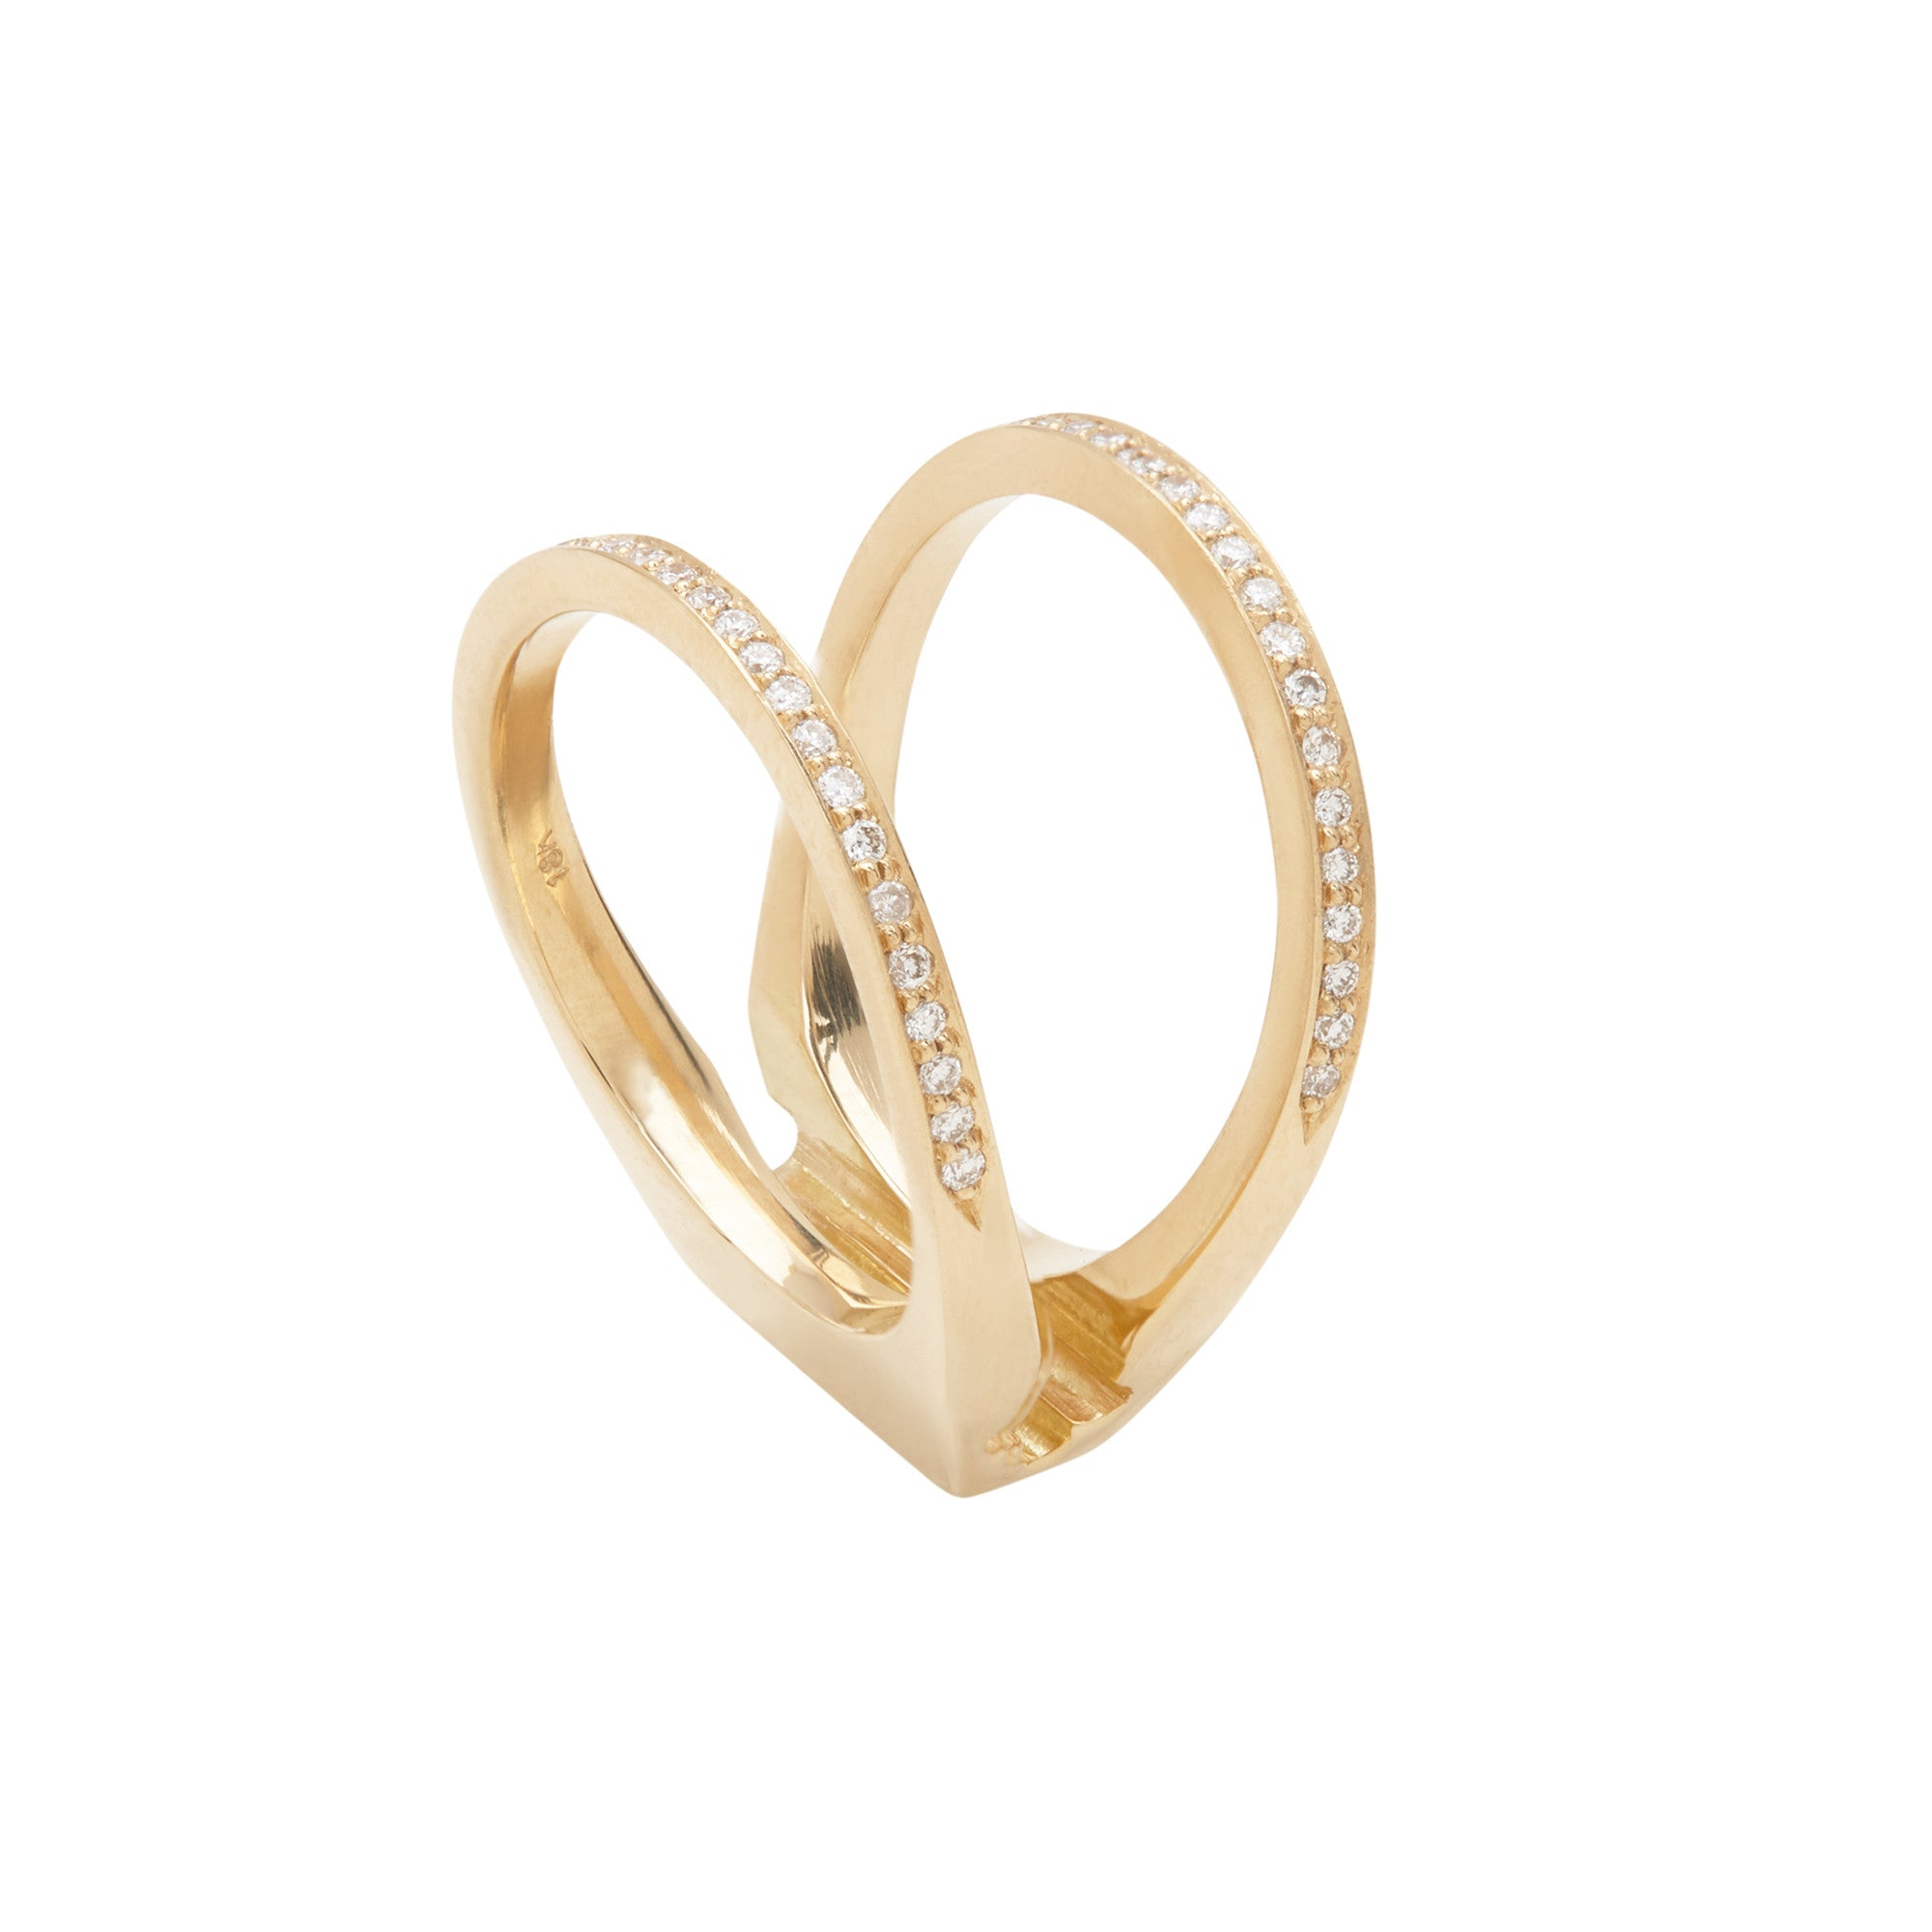 Acute Enclose Ring 18K Yellow Gold Diamond Pave